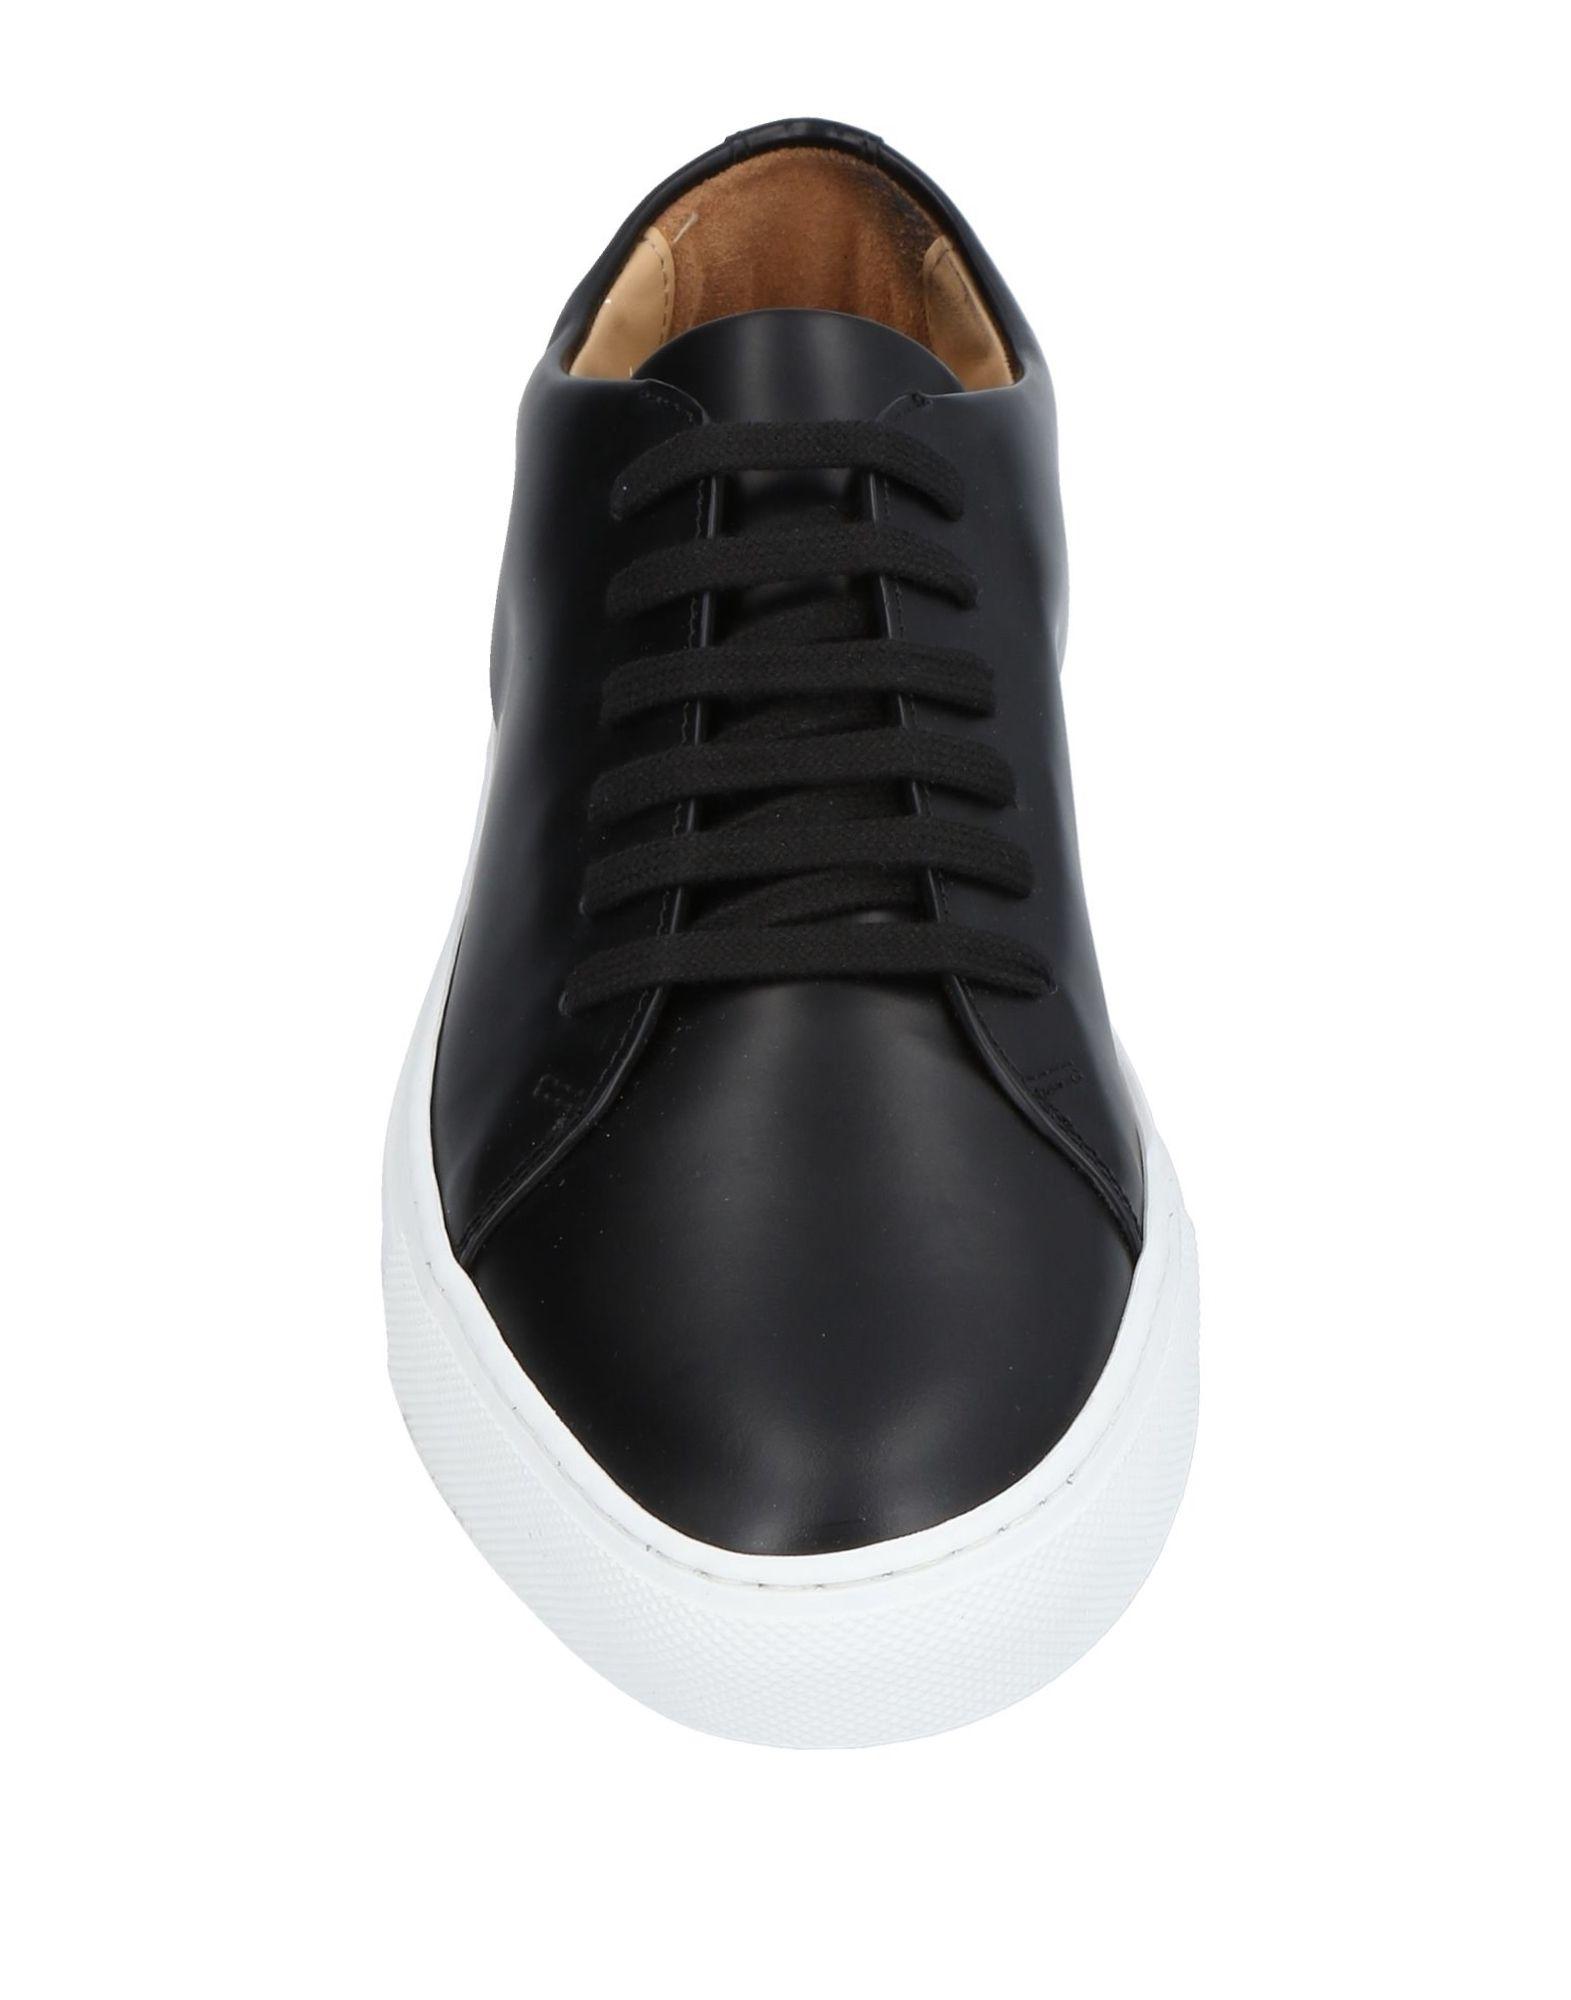 Woman By Common Projects Sneakers Damen  11460122SHGut aussehende strapazierfähige Schuhe